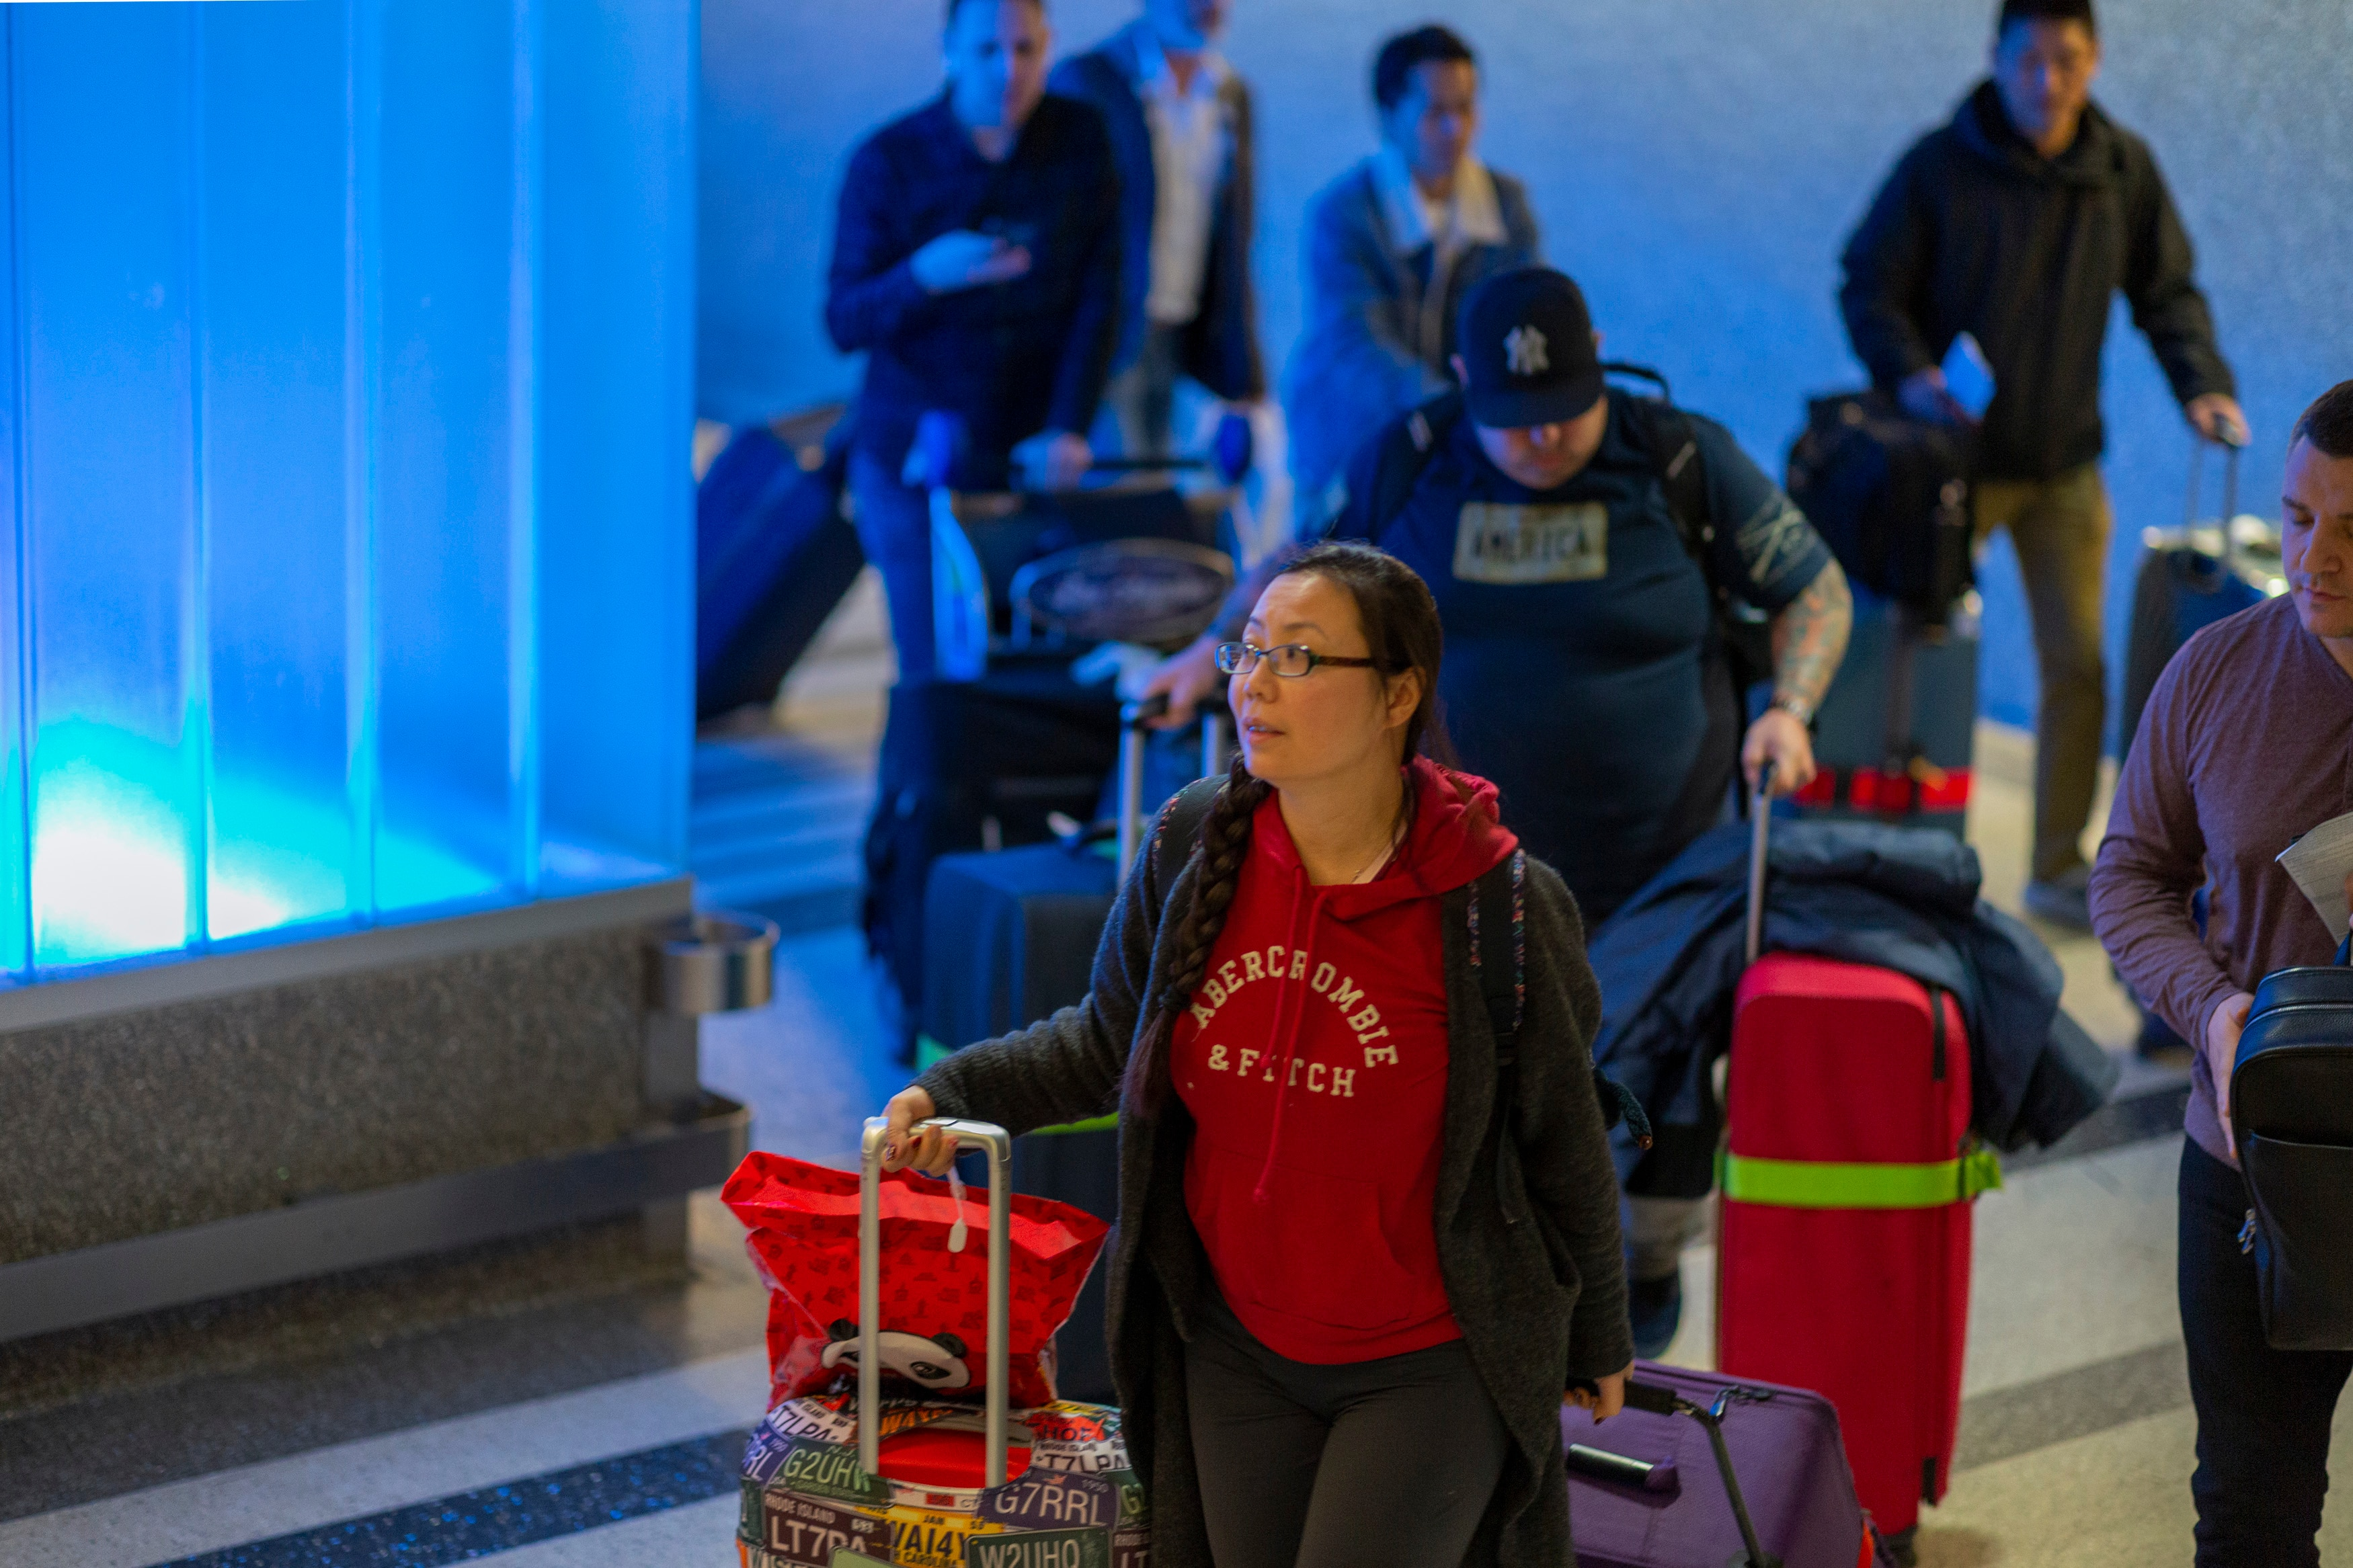 Travellers arrive at Los Angeles International Airport after touching down on an Air China flight from Beijing.